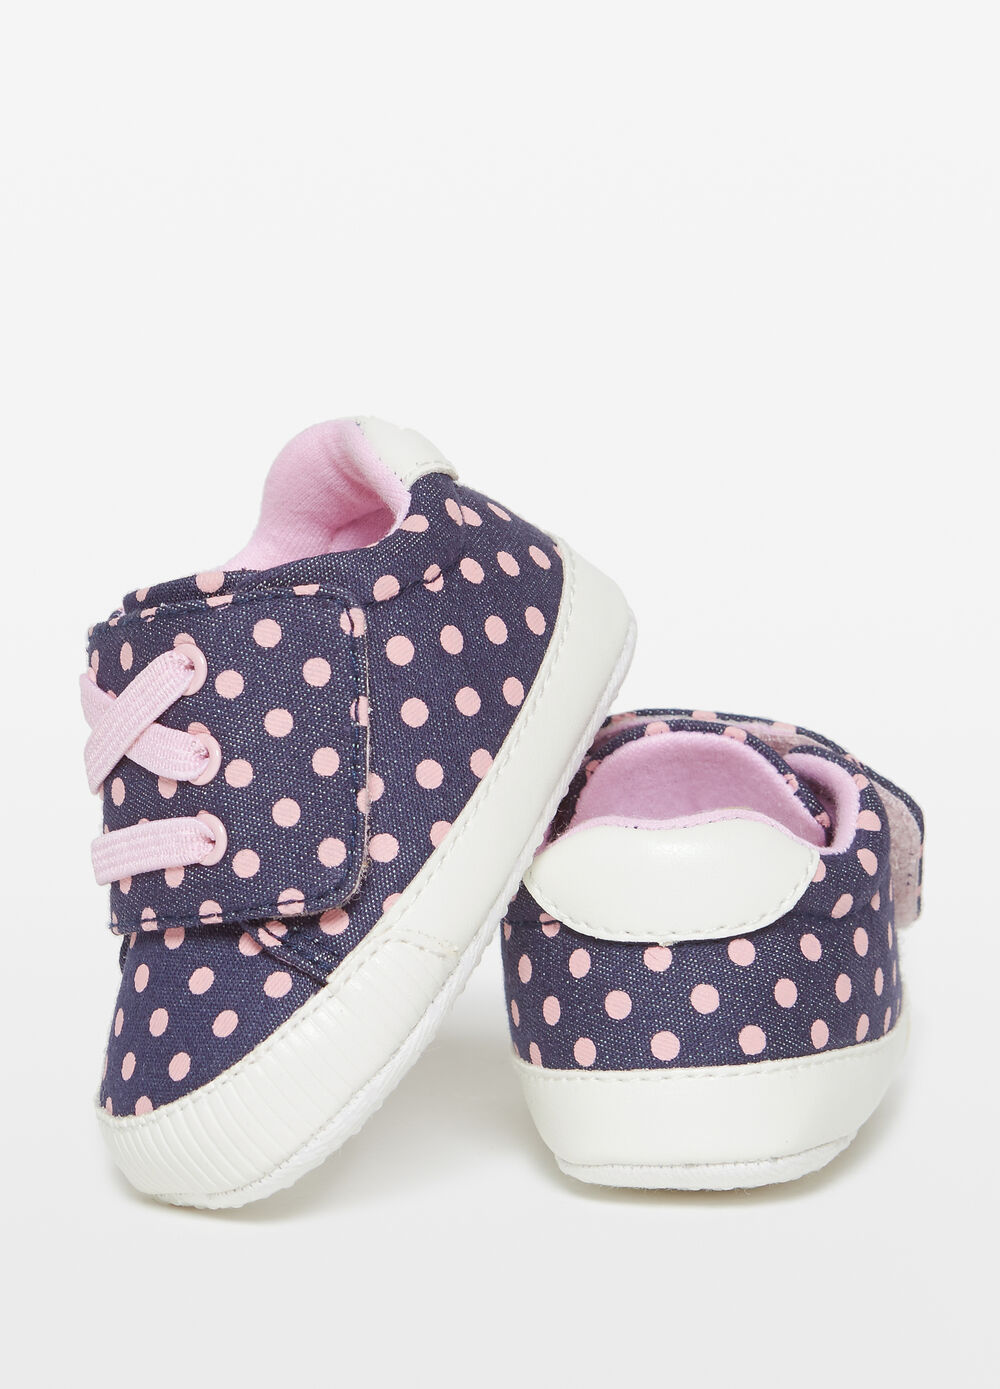 Polka dot denim sneakers